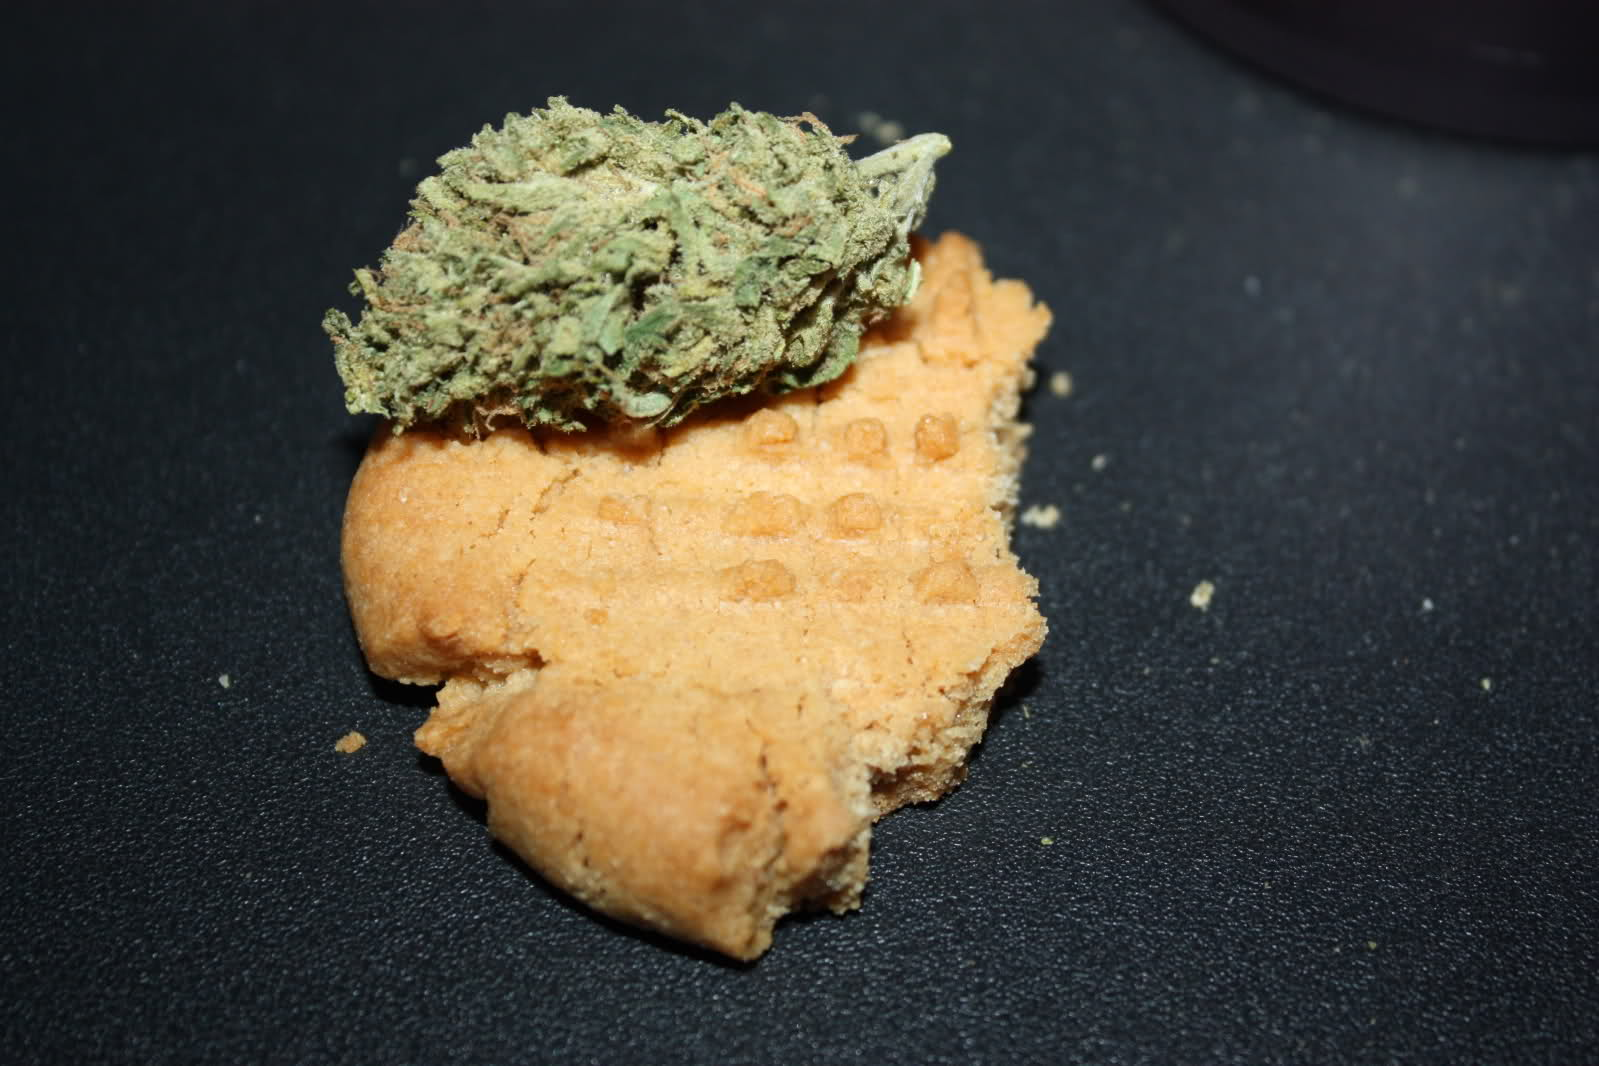 Cannabis infused Peanut Butter Cookies